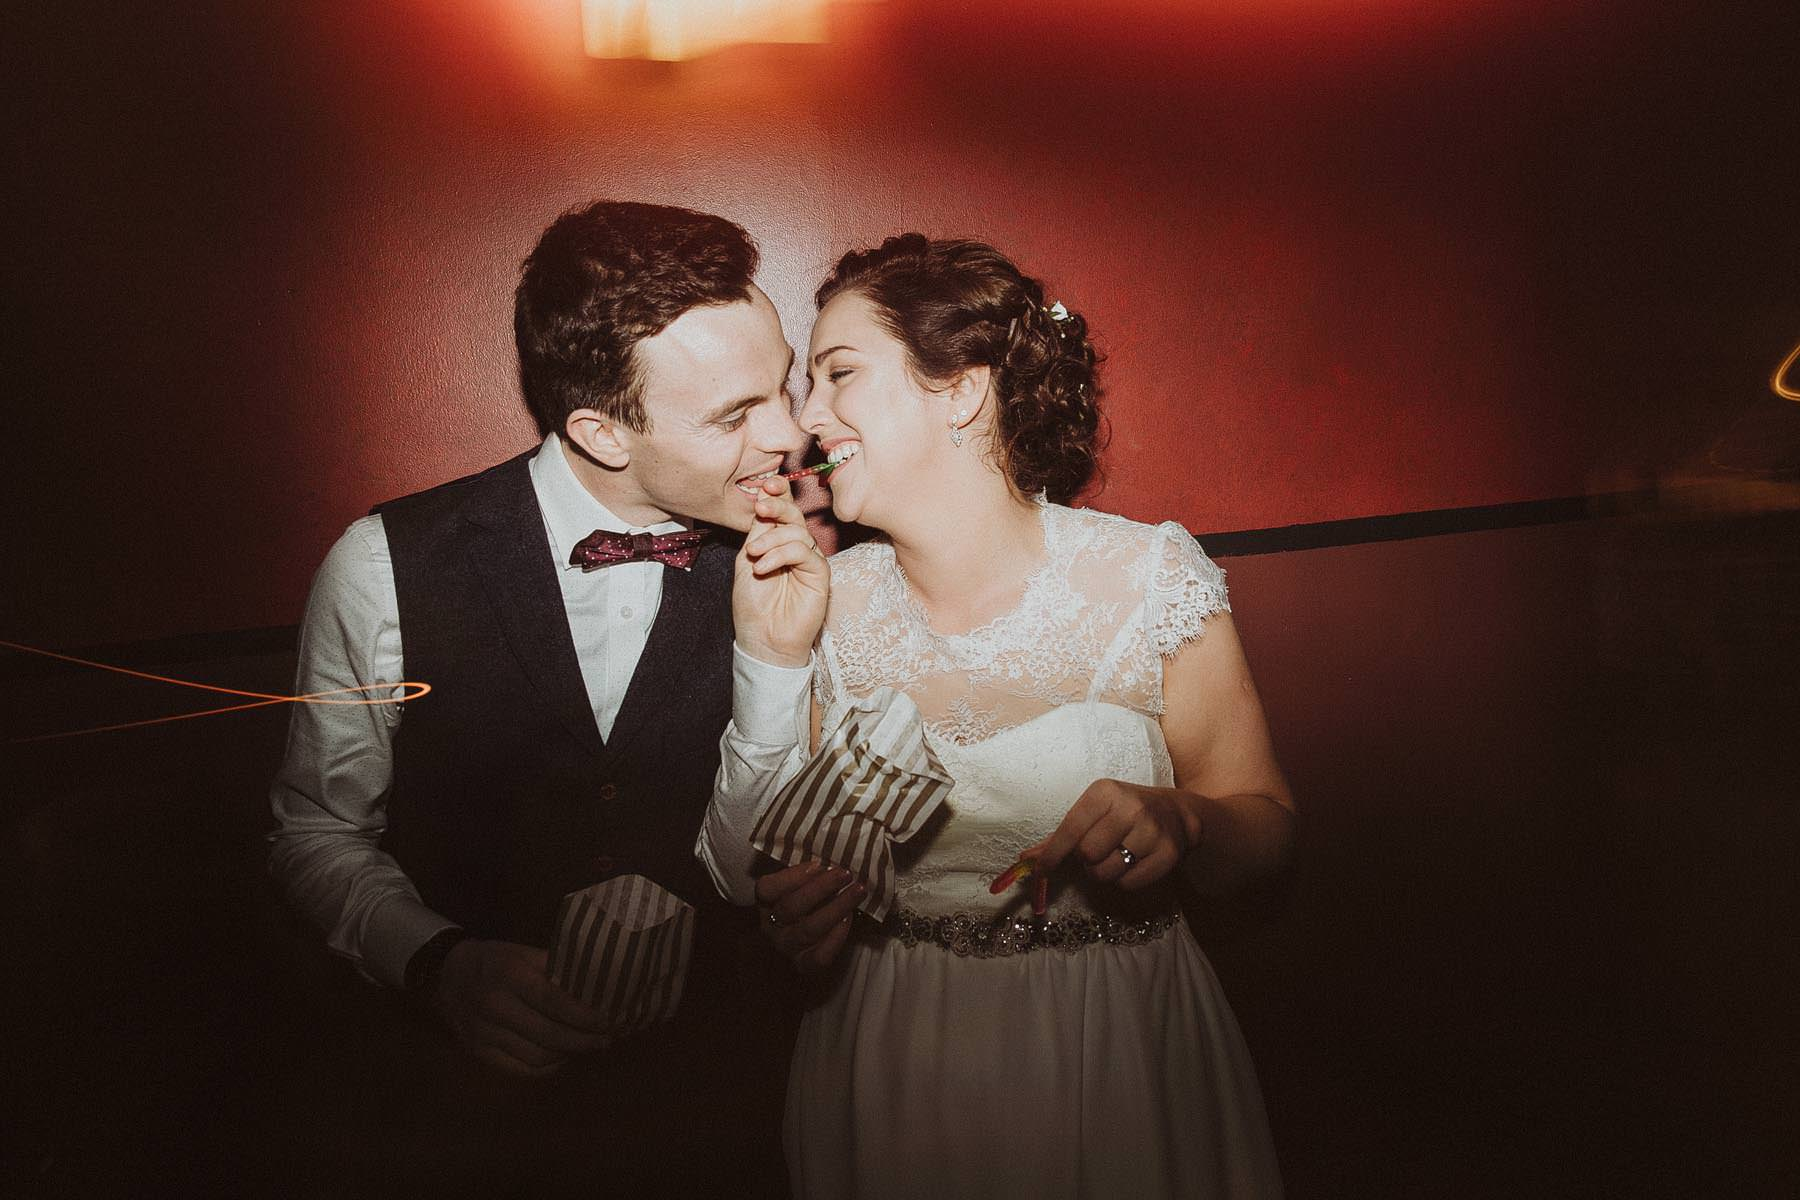 Ireland wedding photography packages